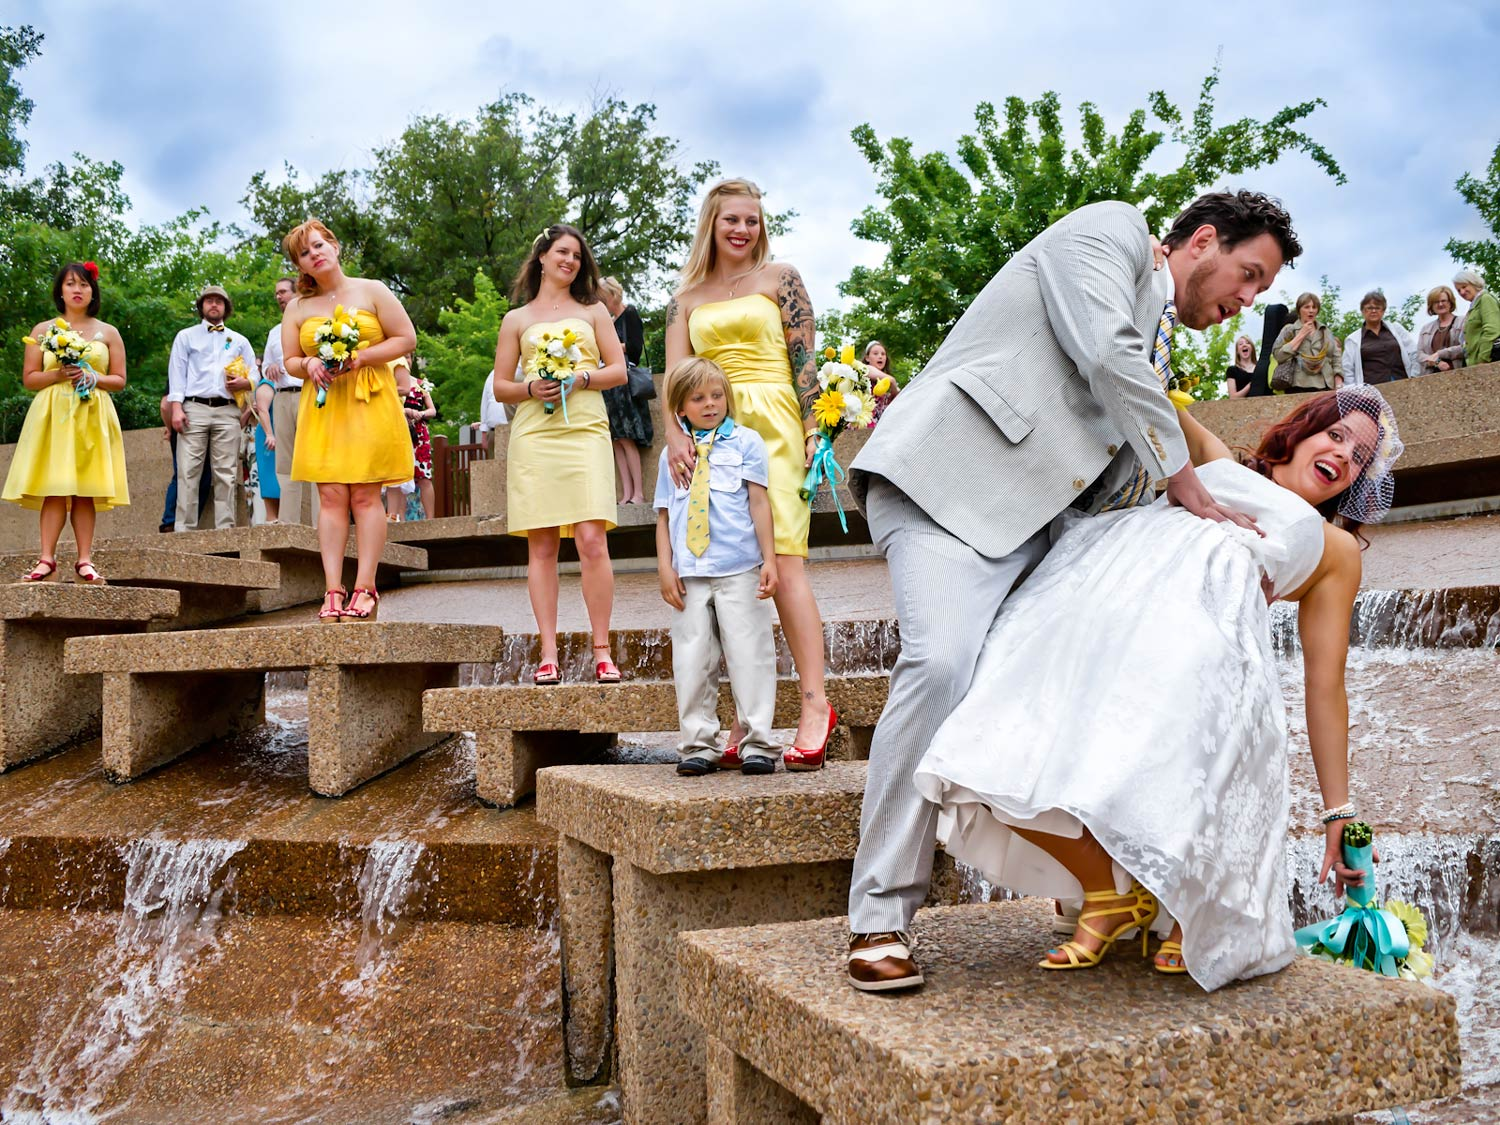 Wedding Amp Commercial Photography In Fort Worth Dallas Wedding Photographers